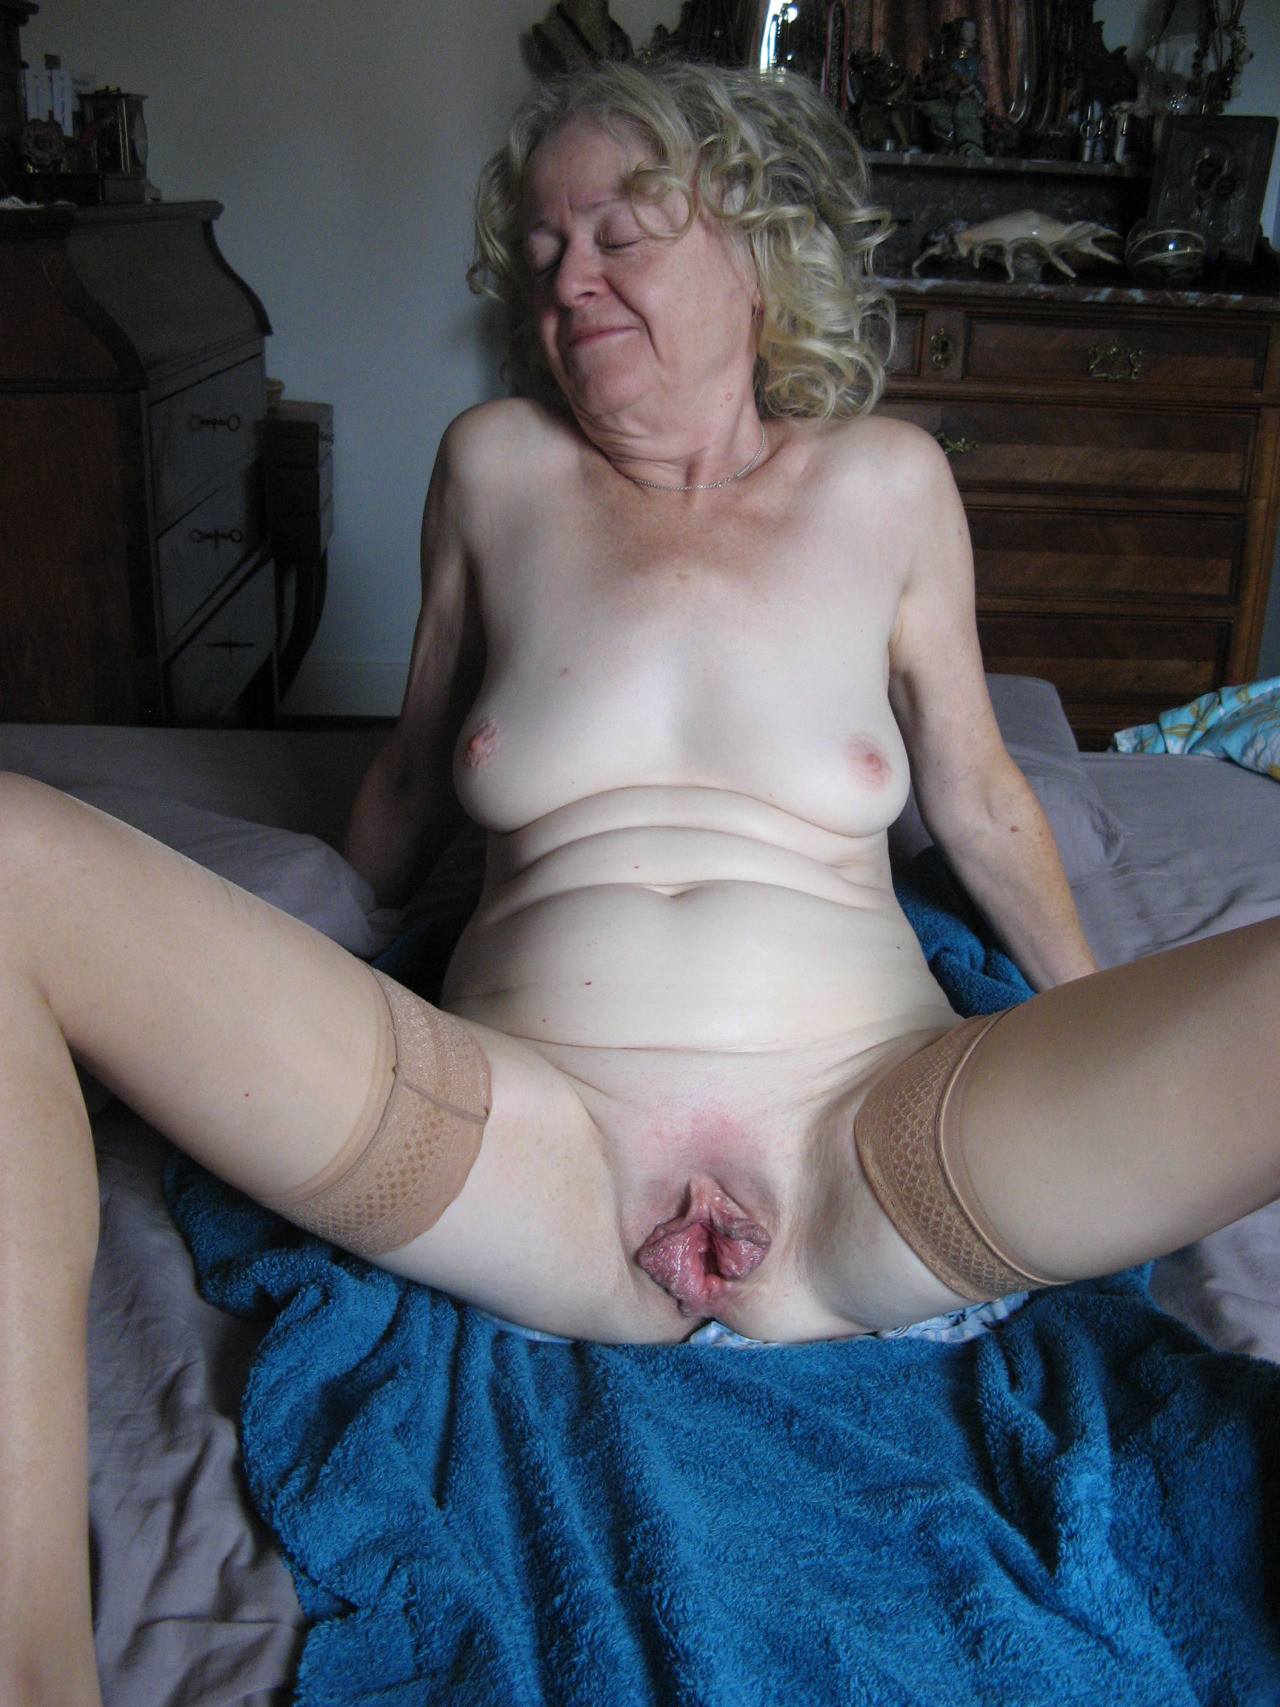 Free solo anal porn gallery